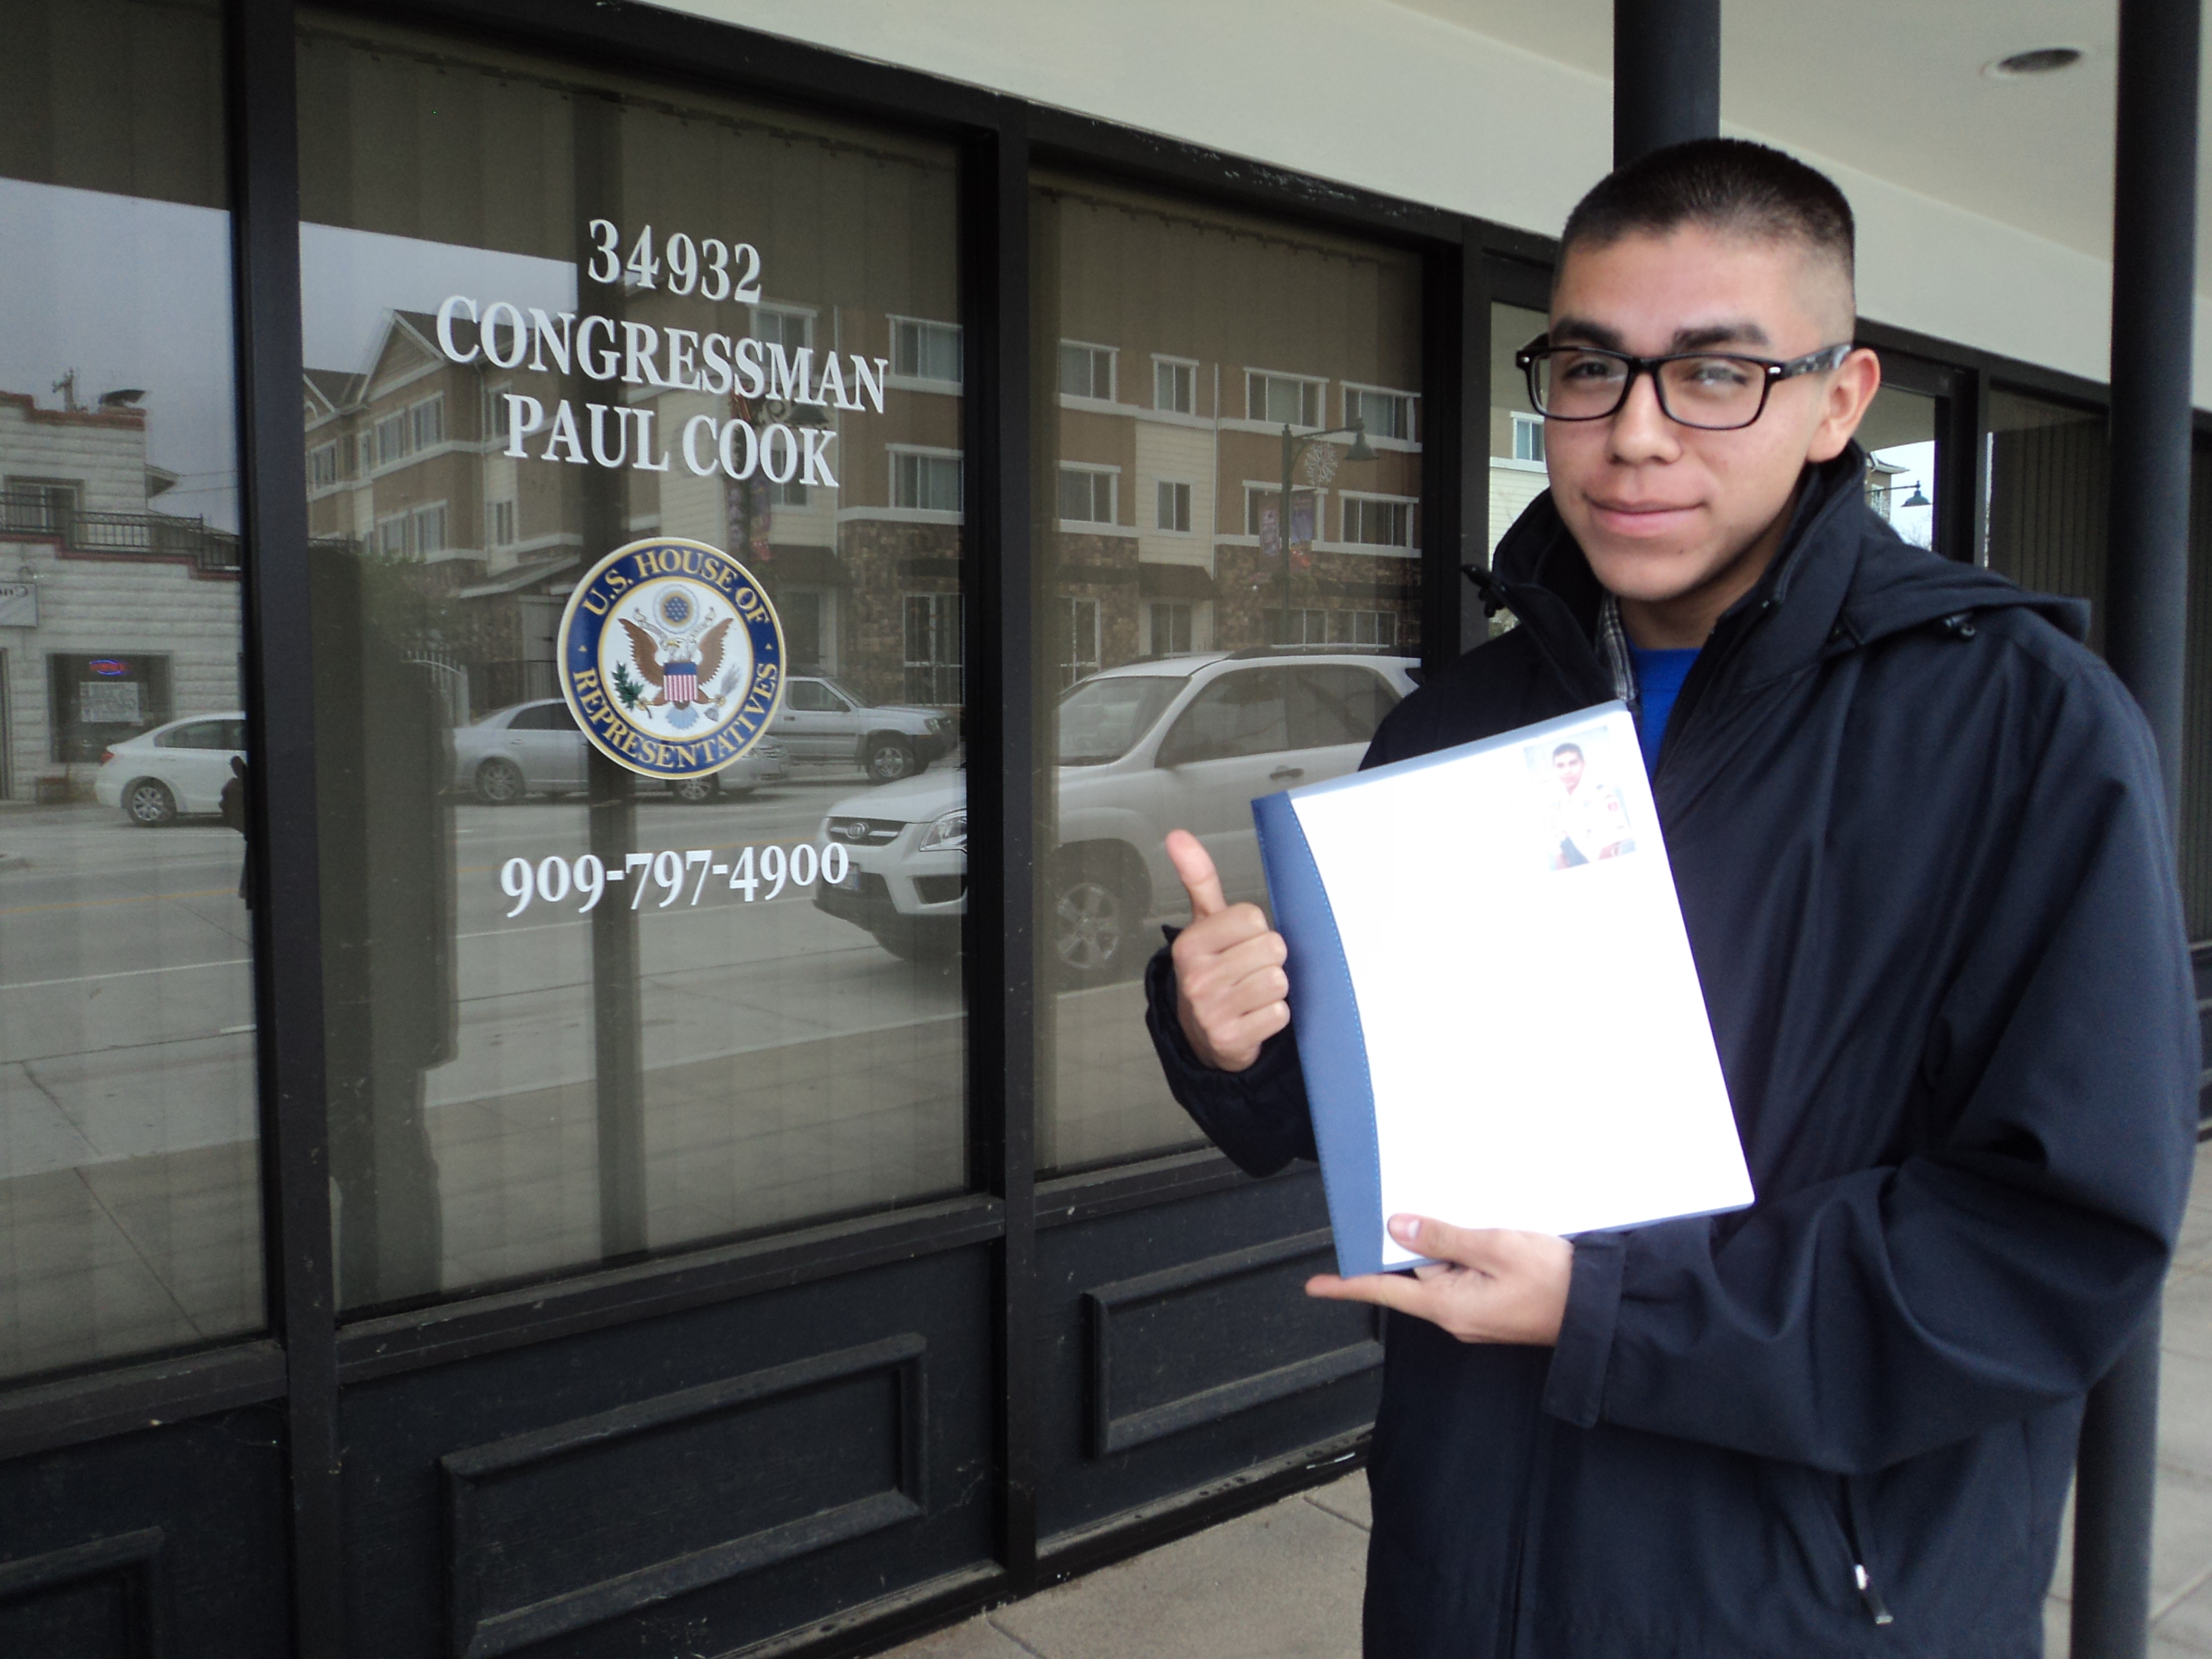 Dropping off nomination at Congressman Cooks office in Yucaipa.